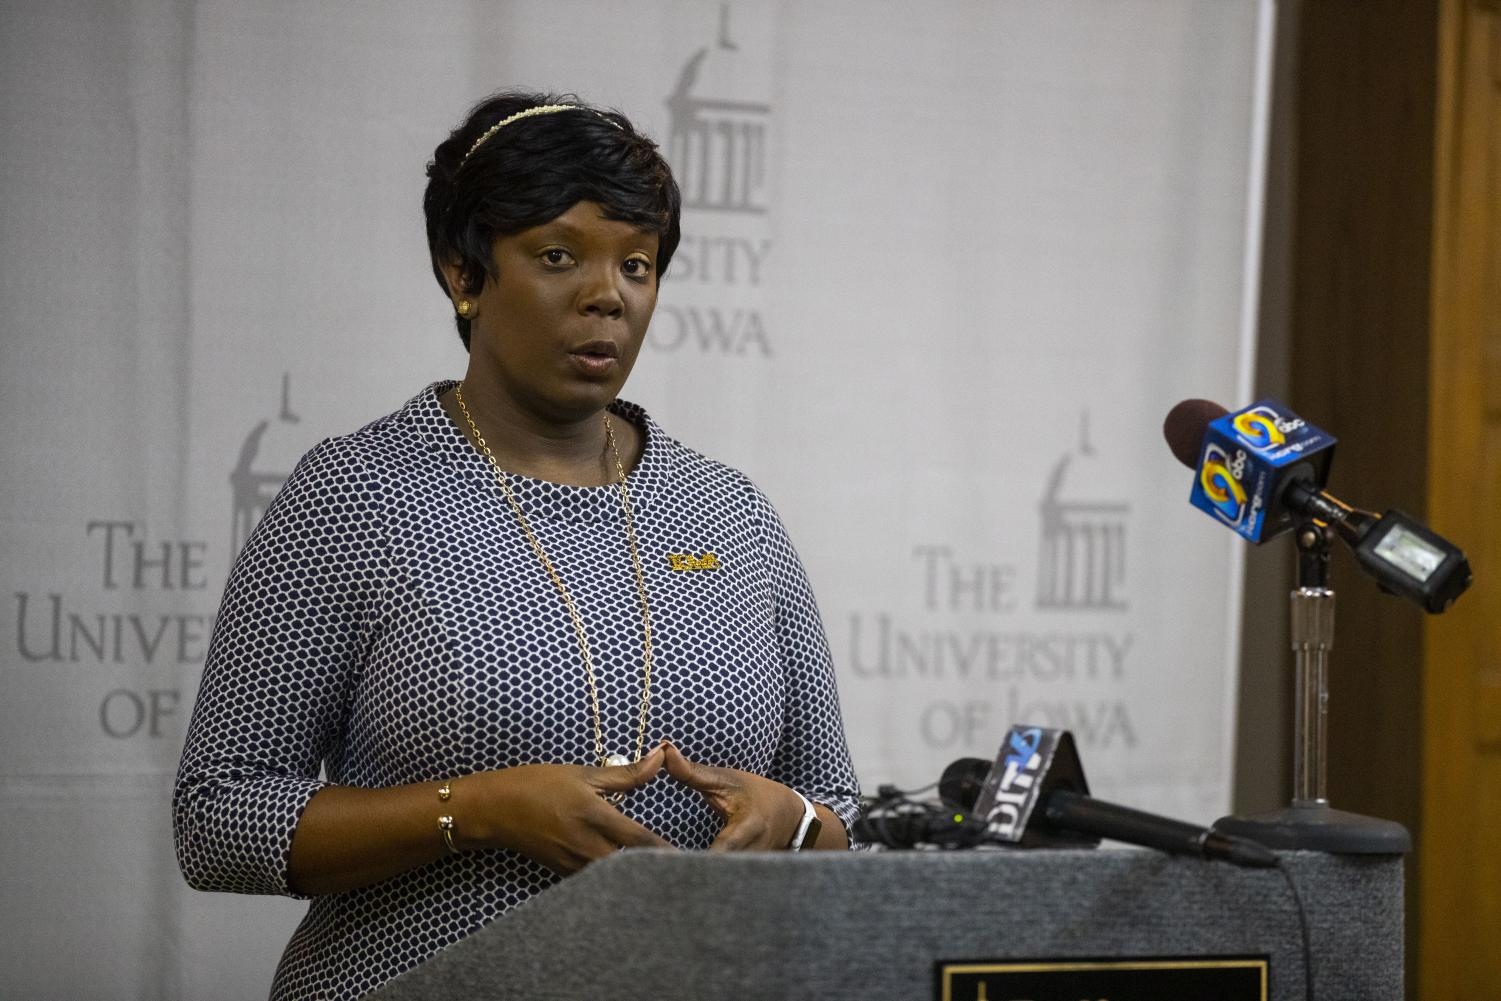 UI Vice President for Student Life Melissa Shivers speaks during a press conference in the IMU on Thursday, Dec. 13, 2018.